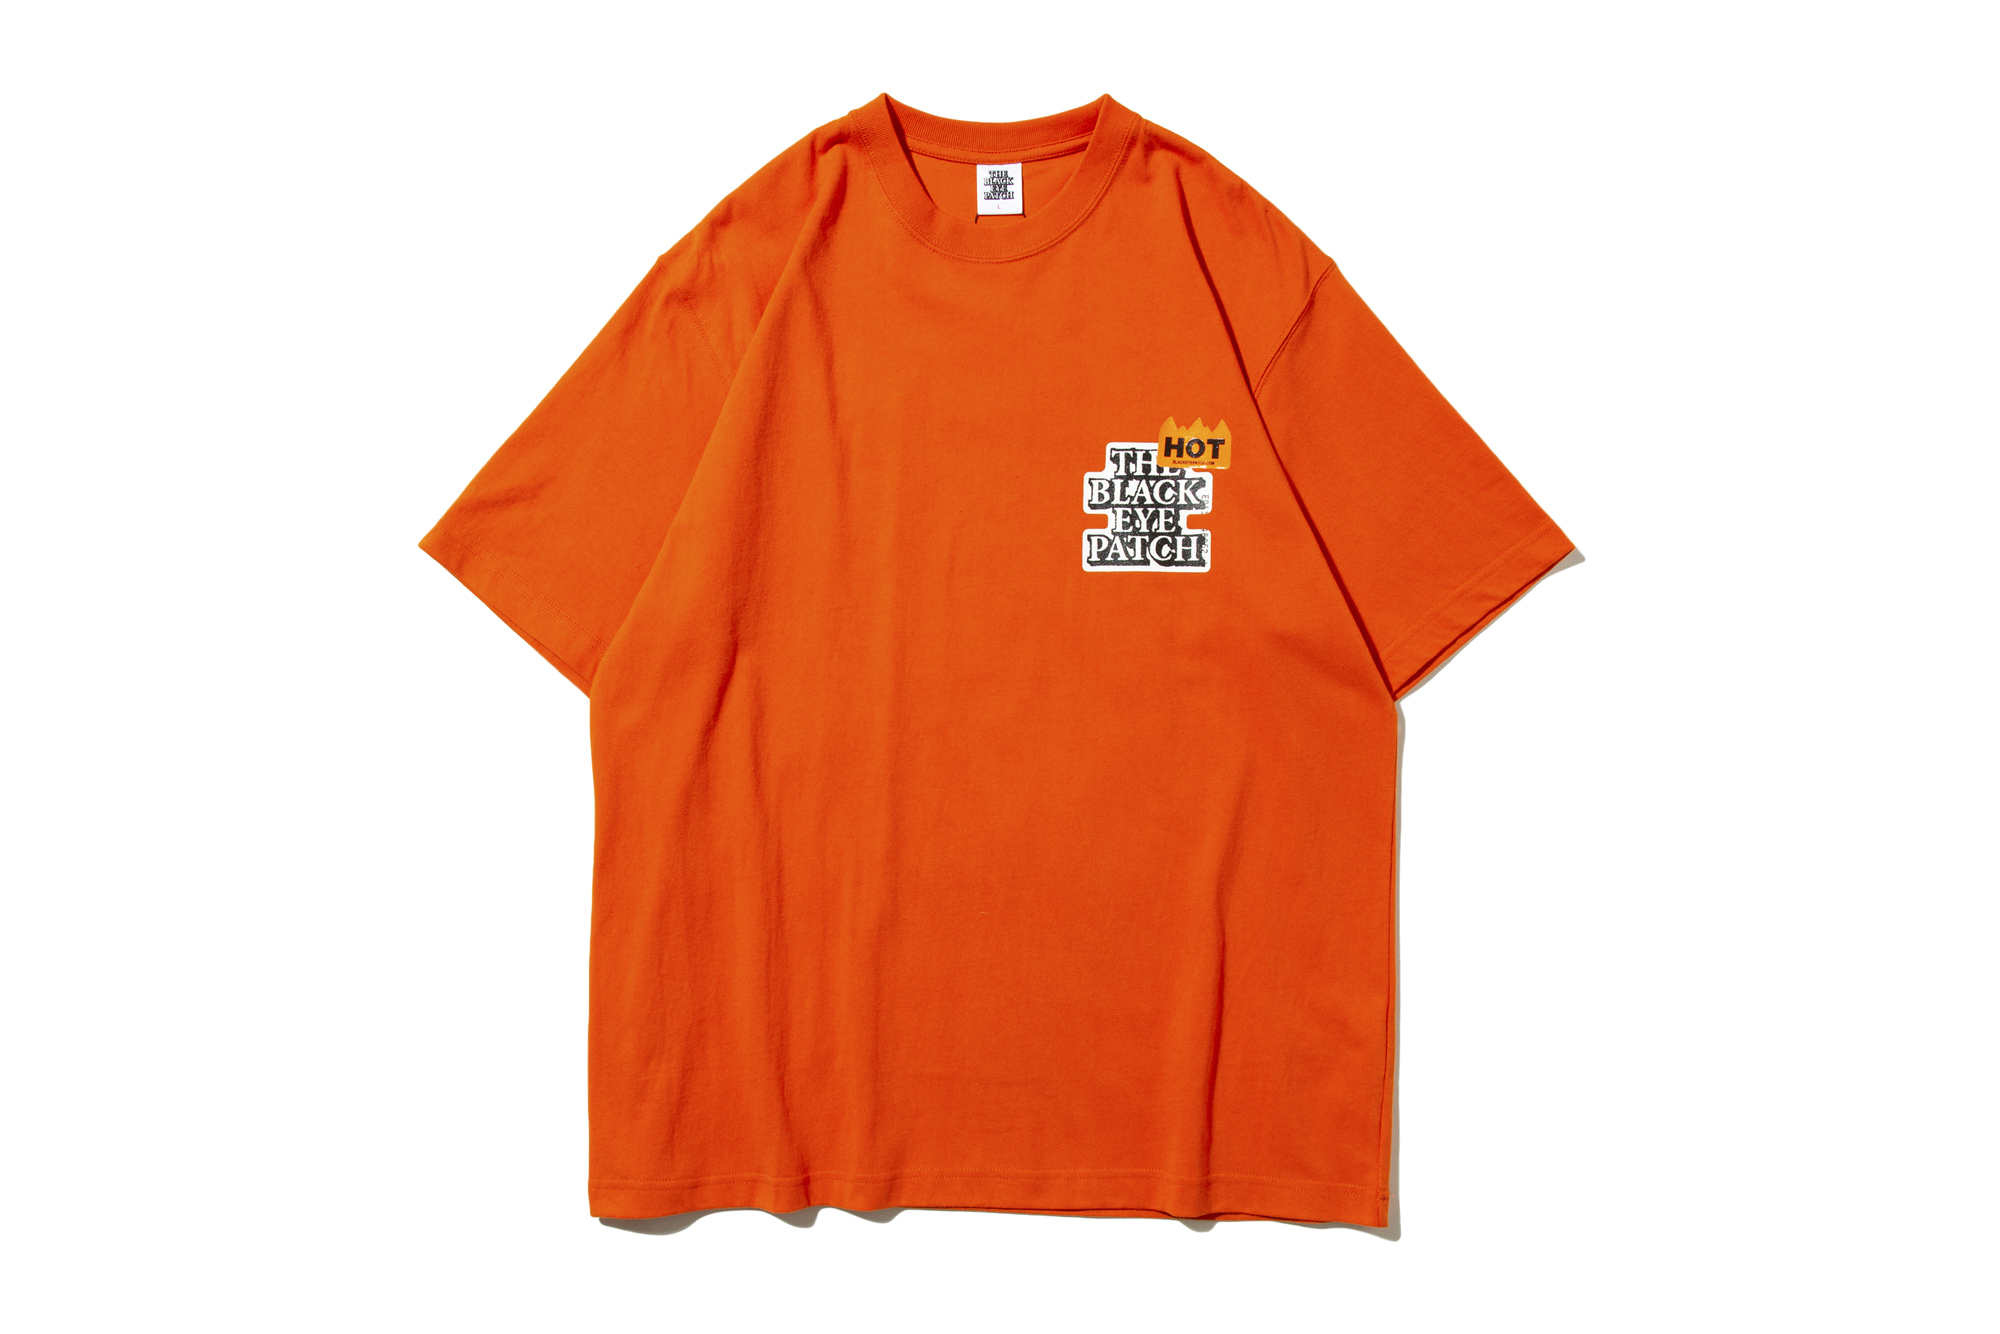 hot-label-tee-orange_p2